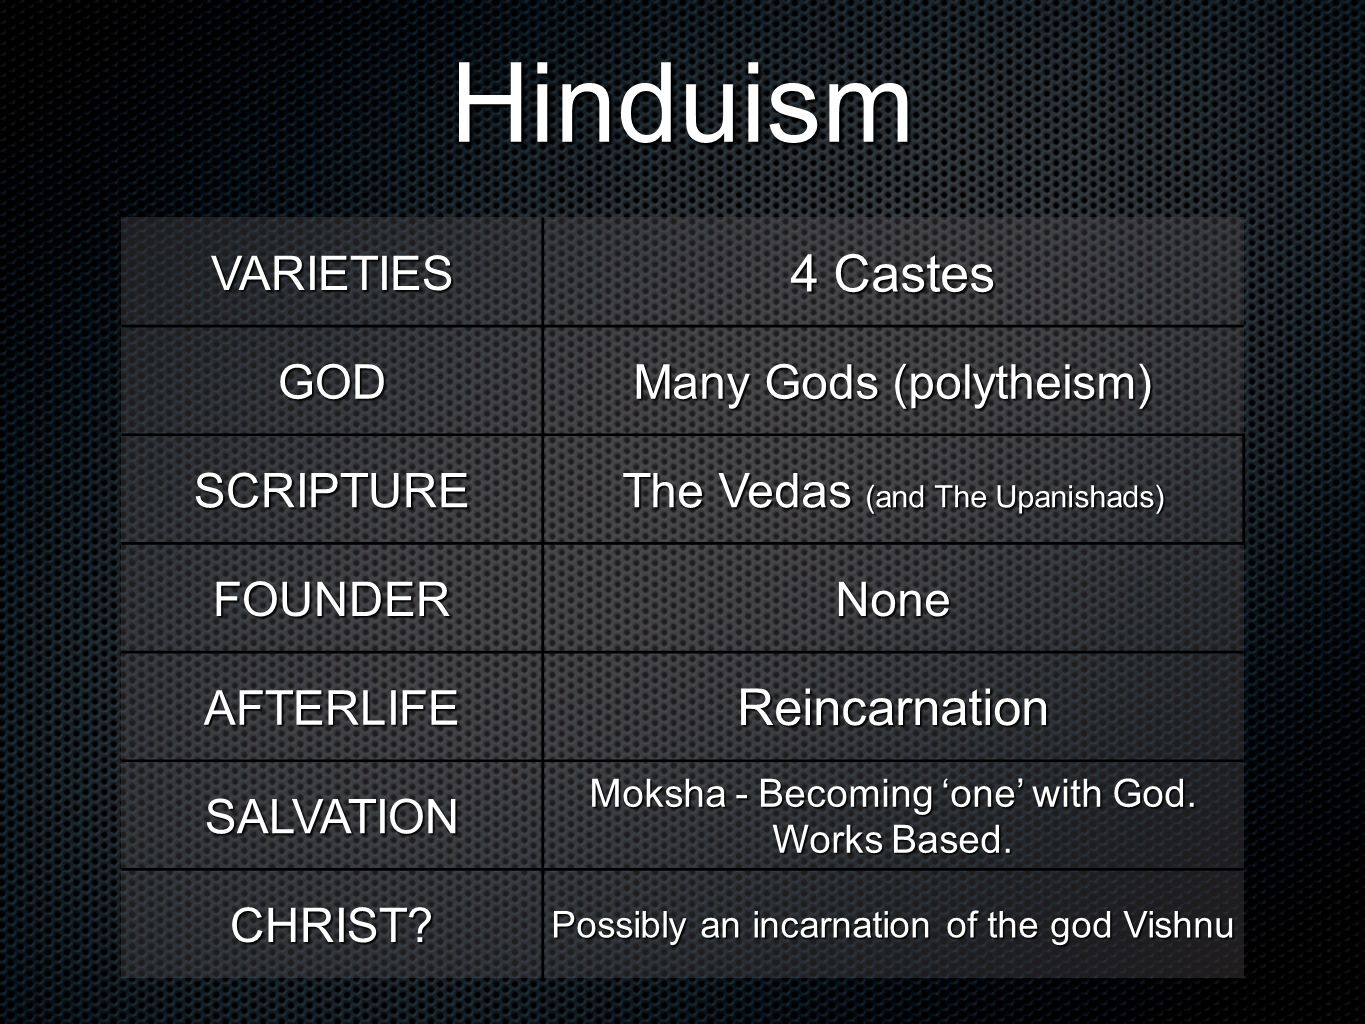 Hinduism 4 Castes Reincarnation VARIETIES GOD Many Gods (polytheism)